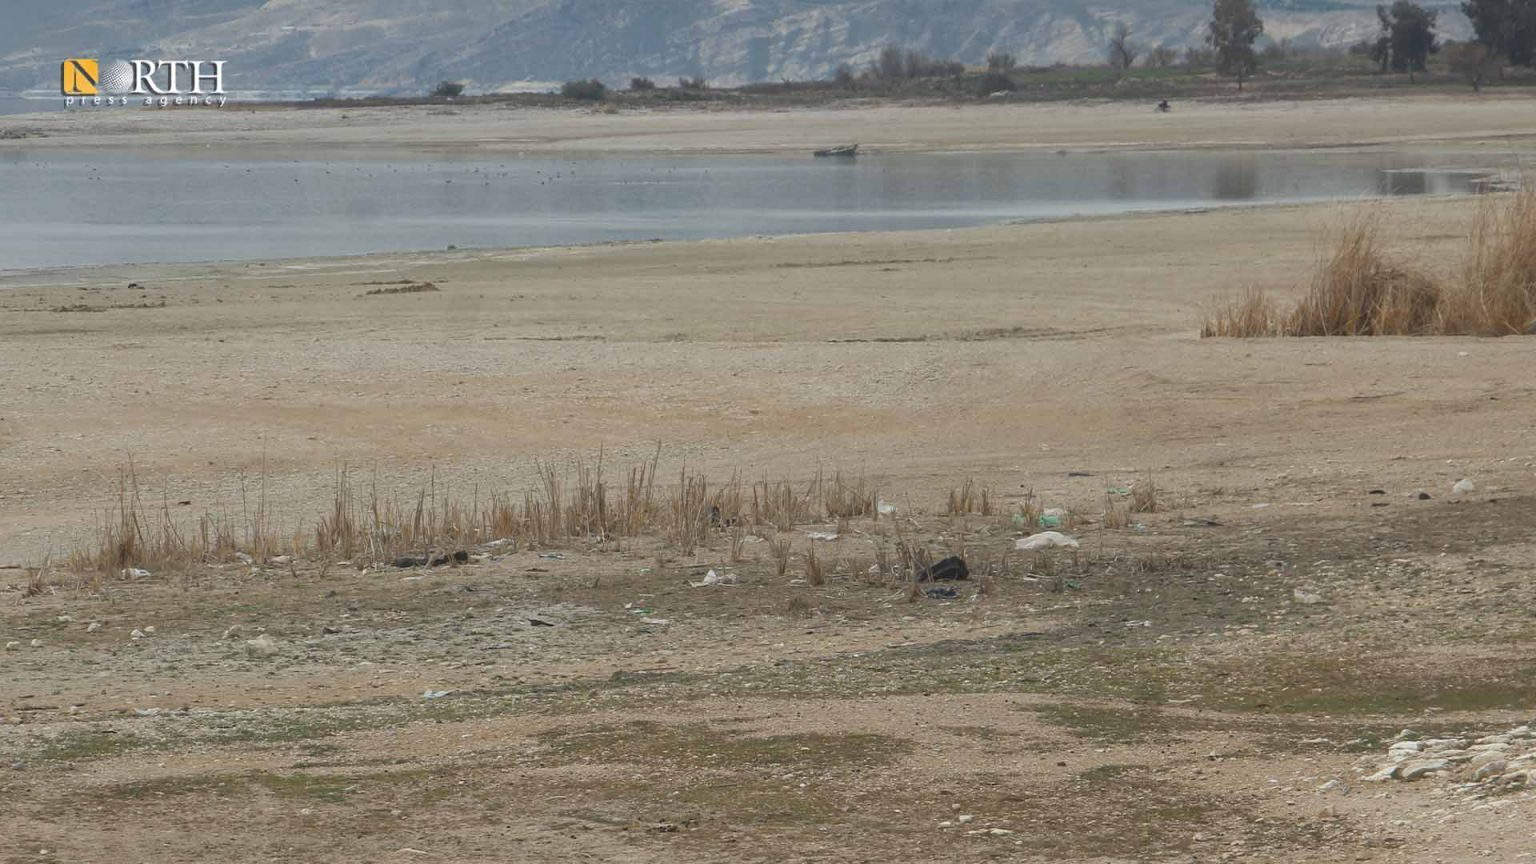 Low water level increases residents' suffering in Manbij countryside – North Press